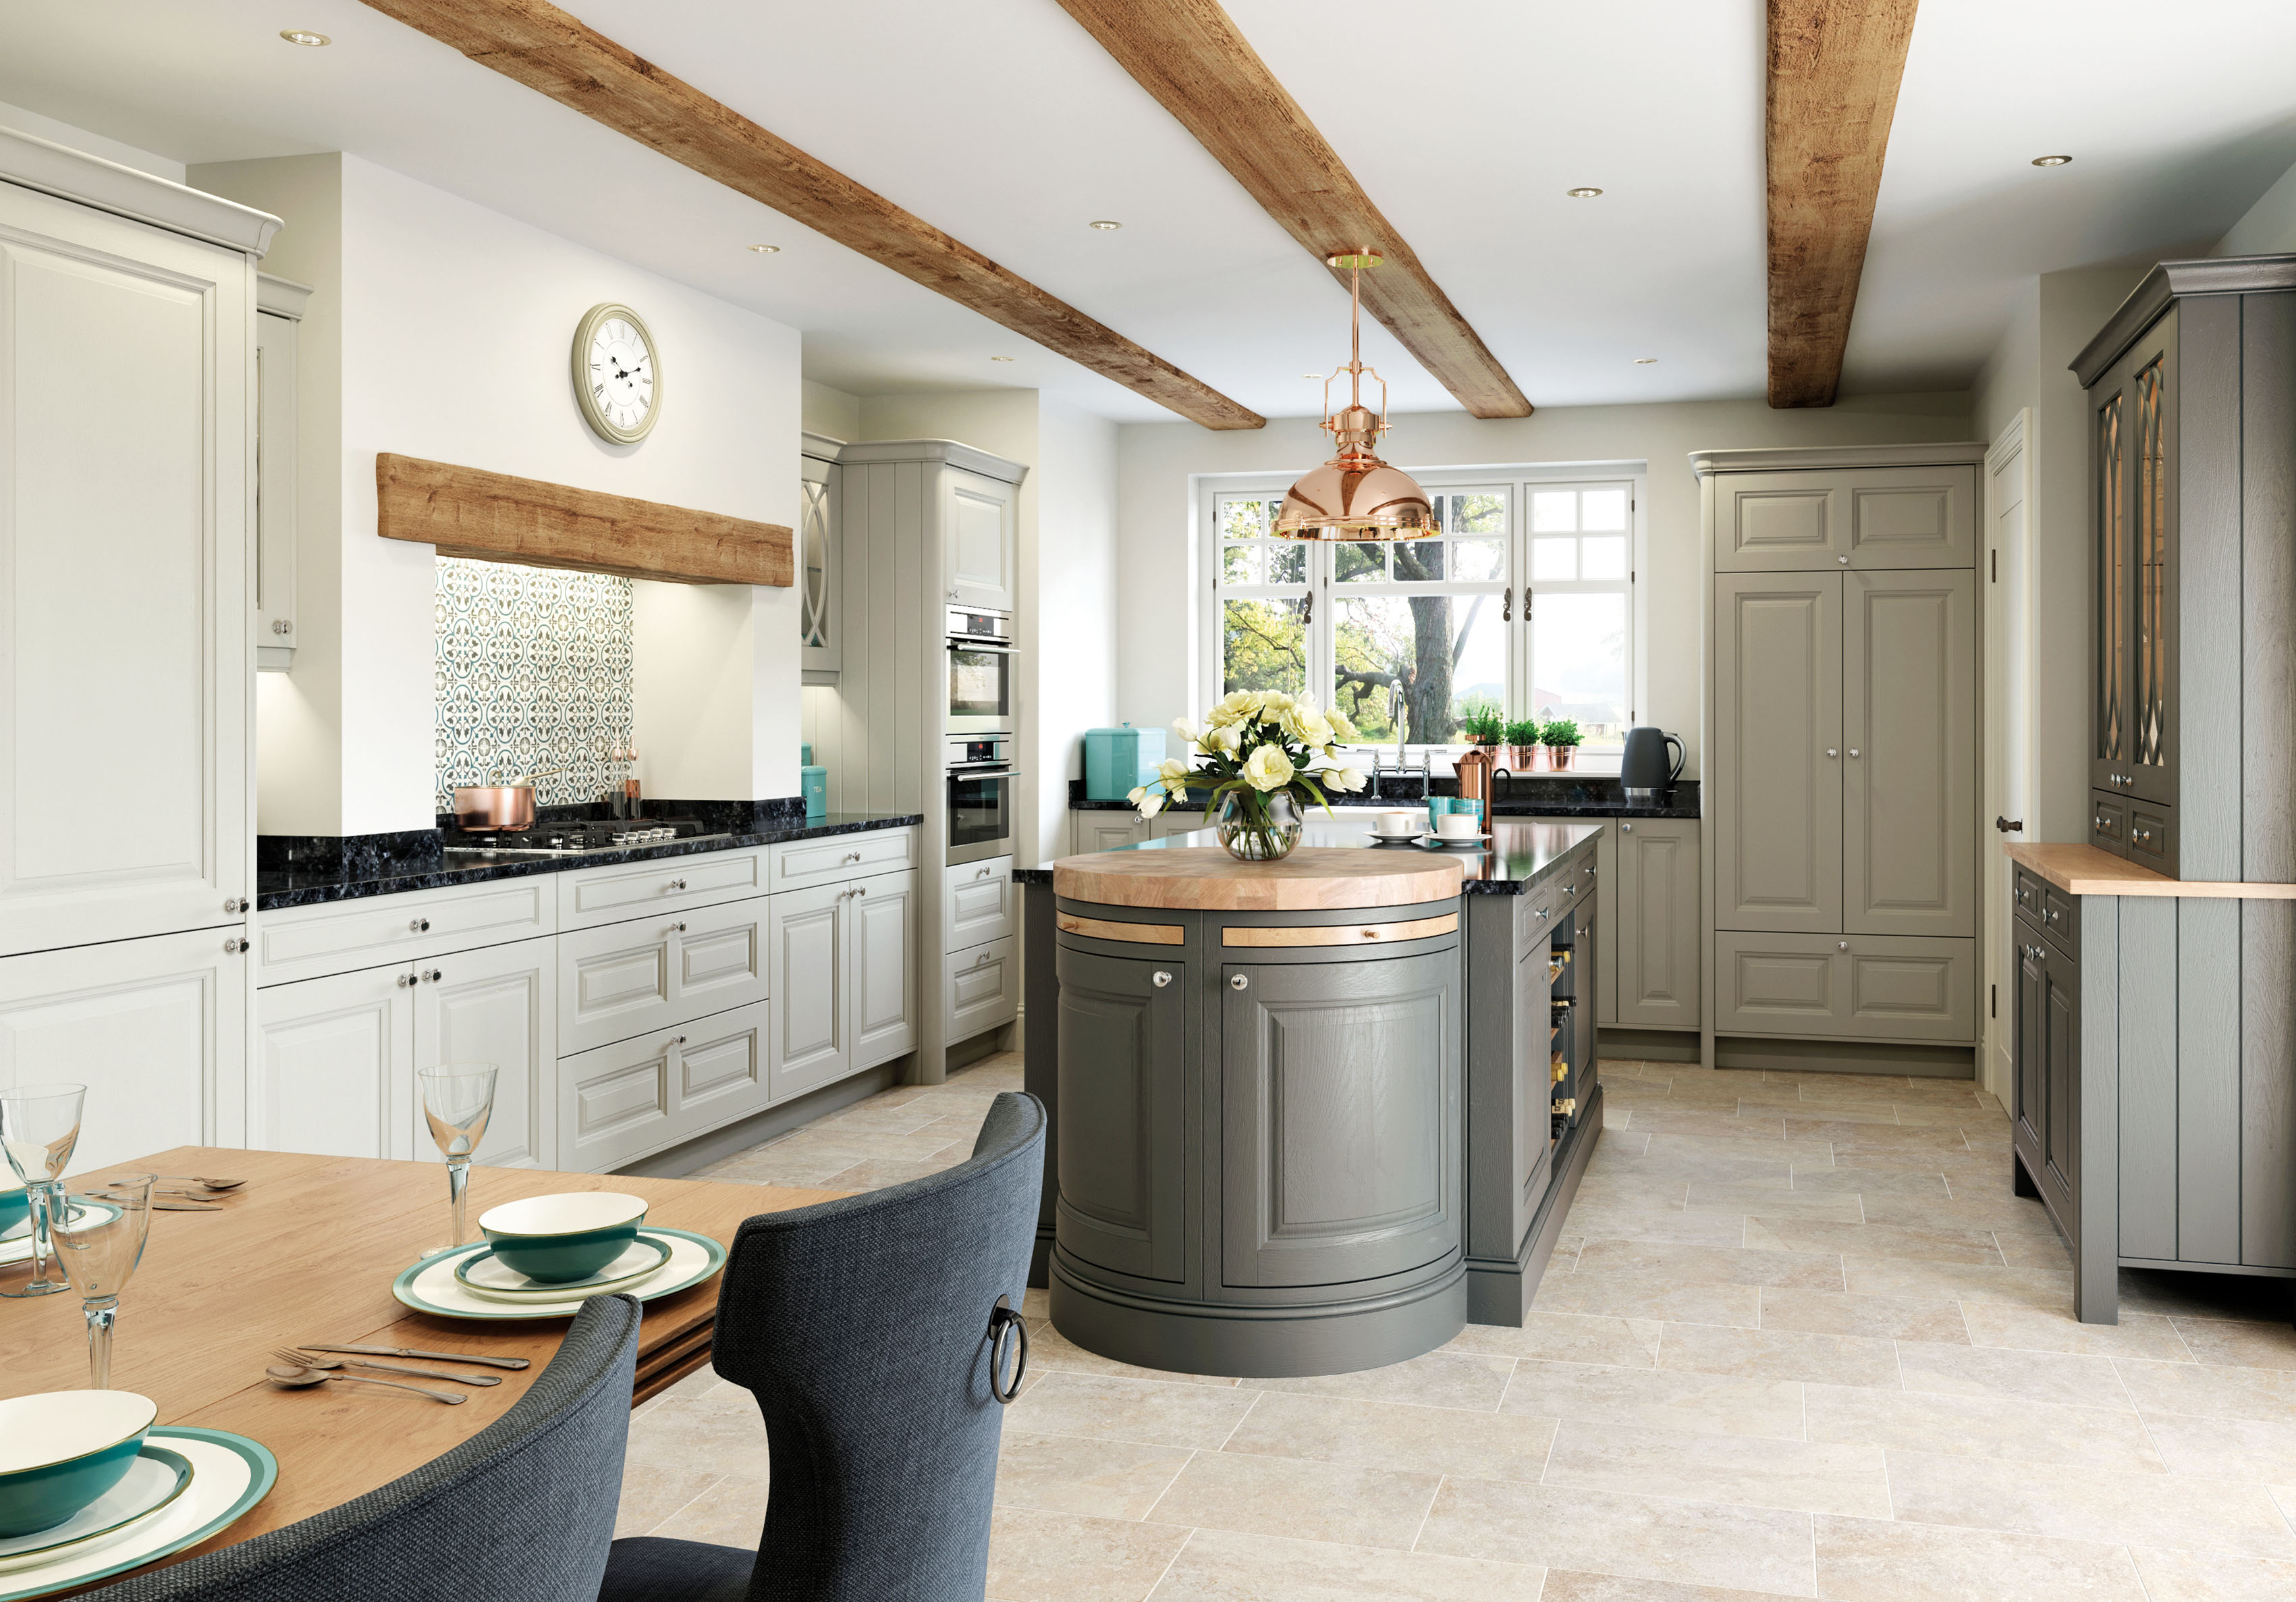 Charnwood Kitchen in Stone and Gun Metal Grey